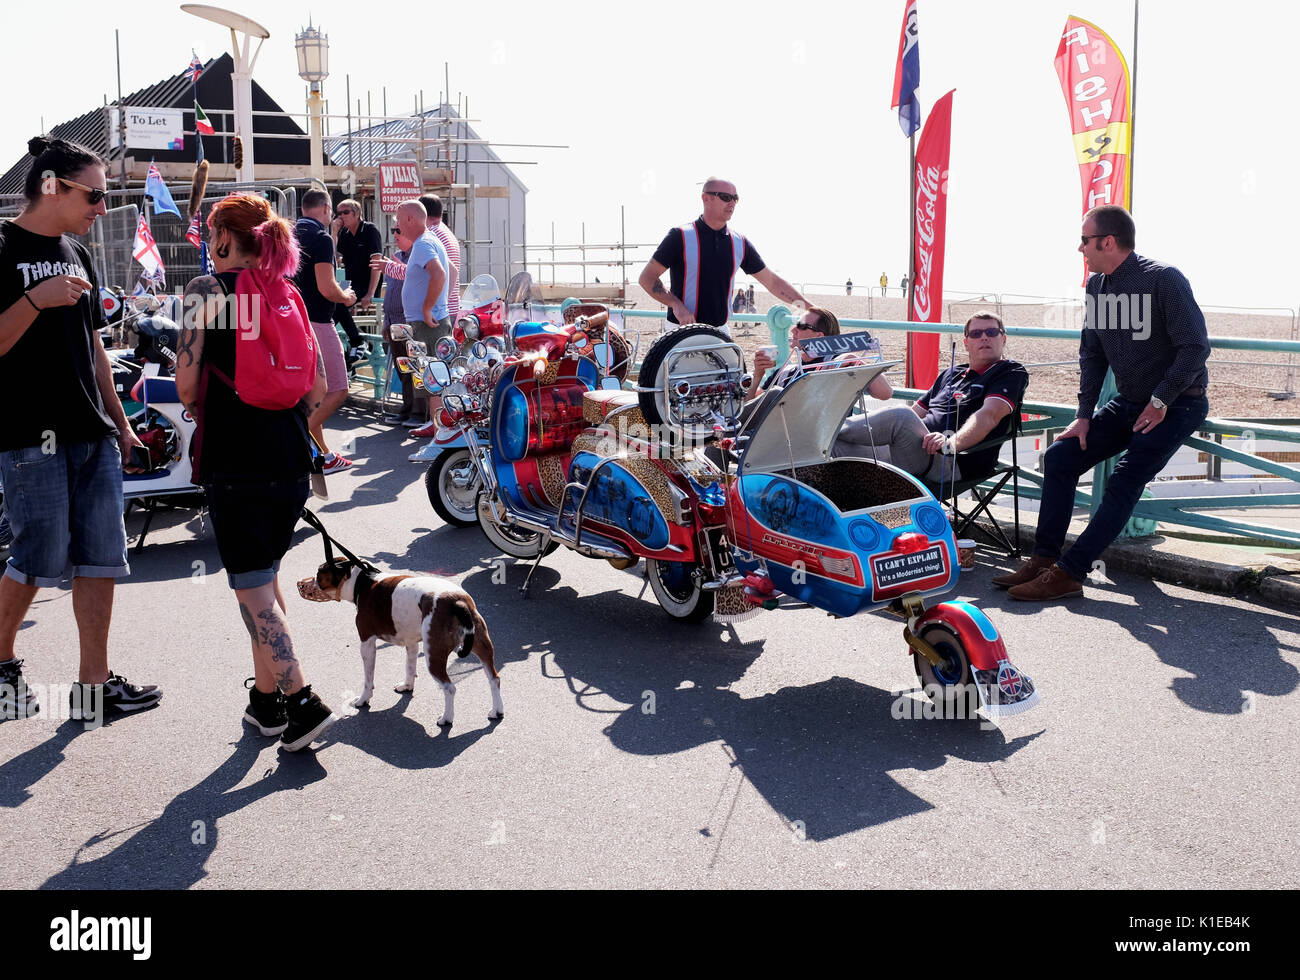 Brighton, UK. 27th Aug, 2017. Hundreds of Mods invade Brighton seafront as they take part in the Brighton Mod Weekender event over the bank holiday weekend in beautiful hot sunny weather . Mods have traditionally visited Brighton for the August Bank Holiday since the 1960s when there quite often used to be trouble on the seafront with battles between themselves and rockers Credit: Simon Dack/Alamy Live News - Stock Image